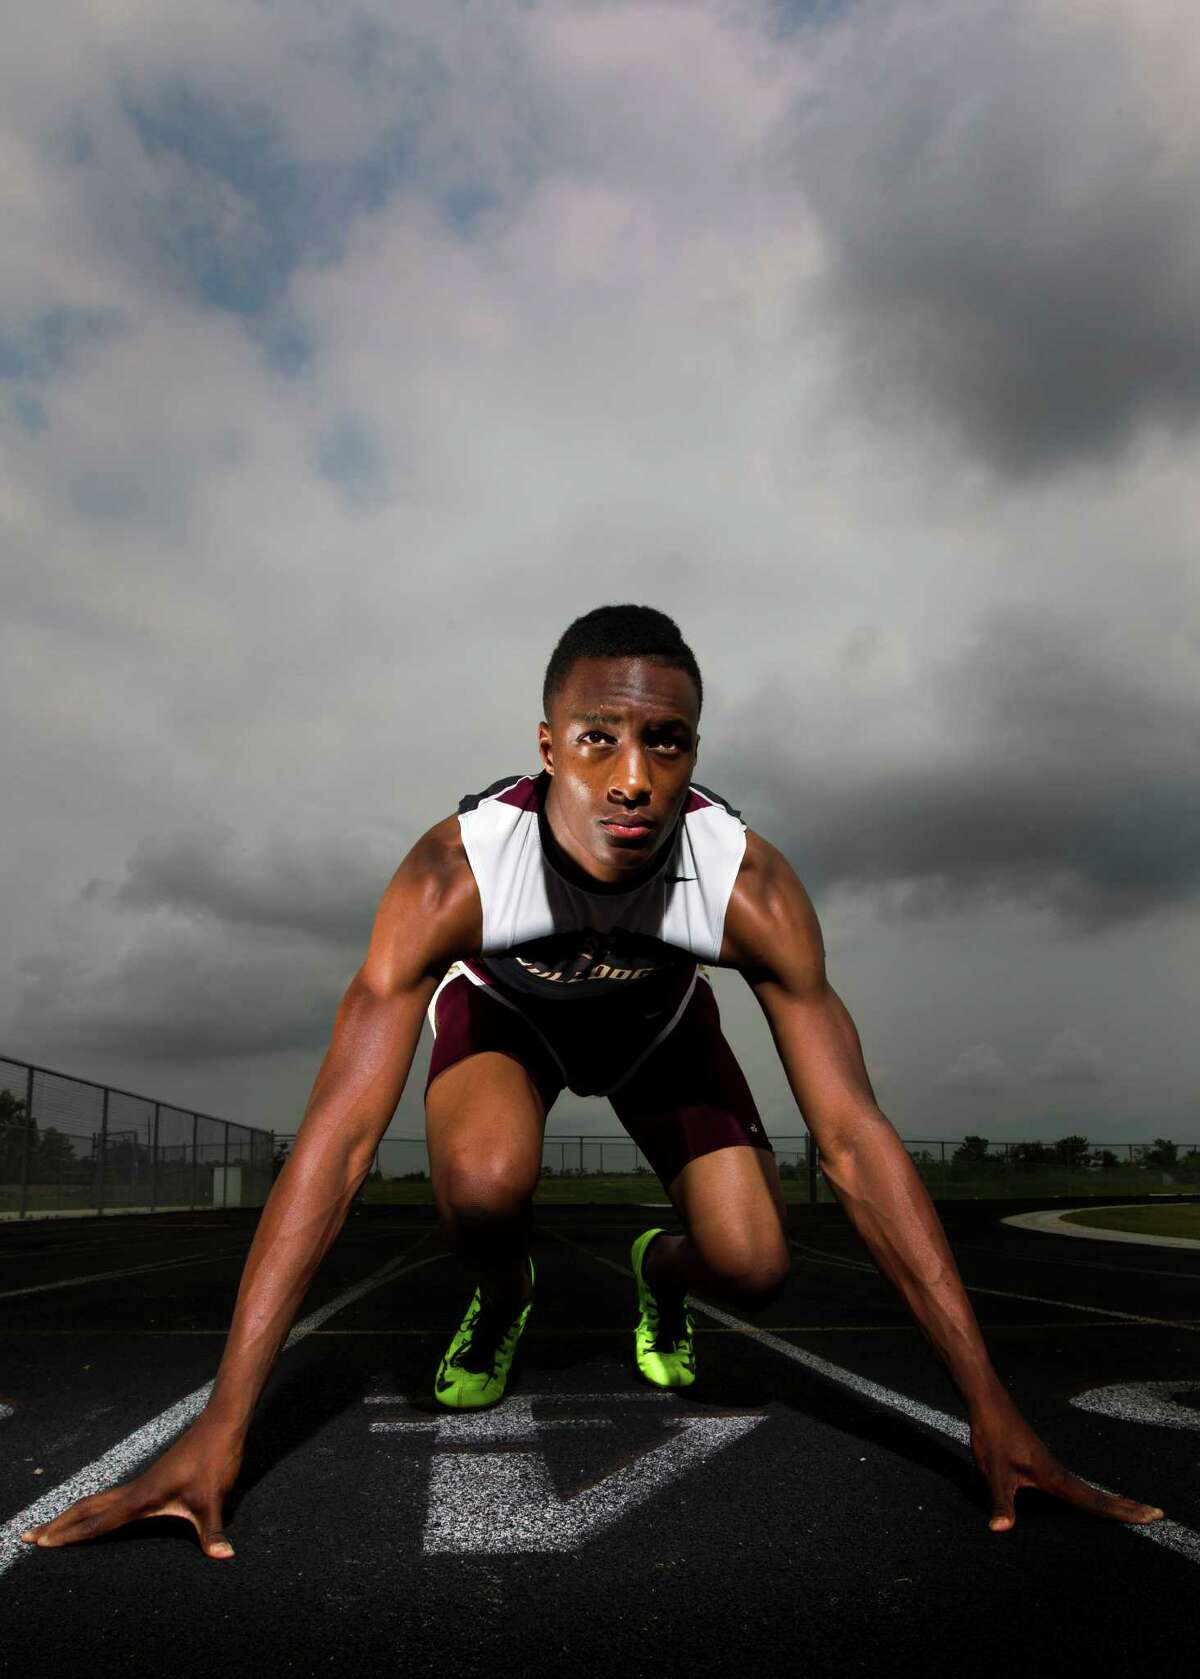 Summer Creek's Aaron Sharp capped a strong track season by winning three gold medals at the 4A state meet and helping the Bulldogs claim the team title.